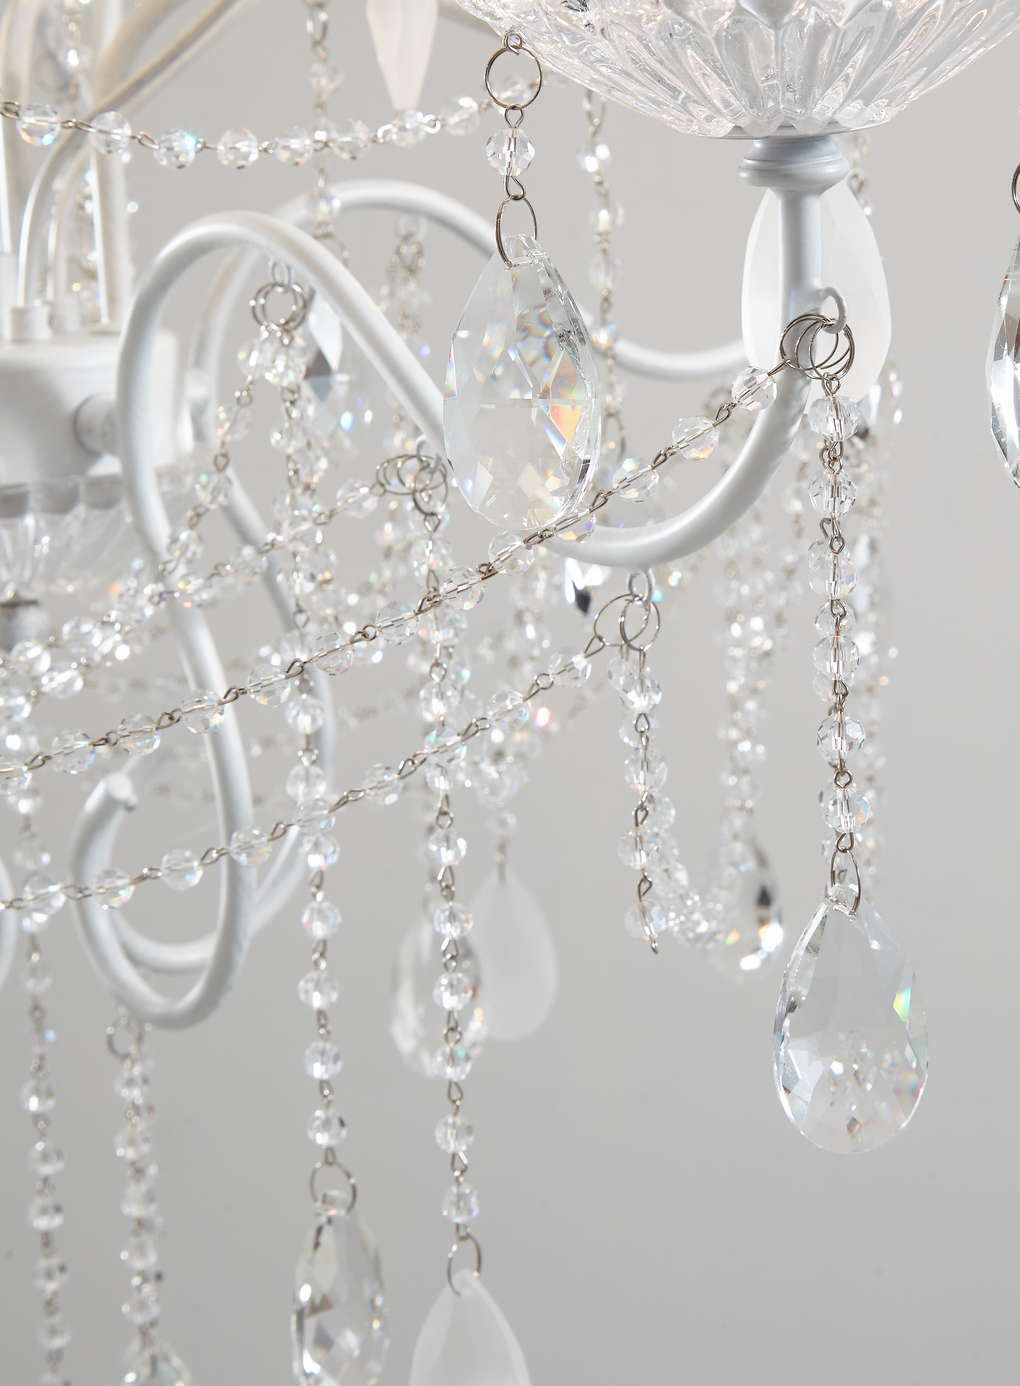 White holly willoughby vintage chandelier bhs houses white holly willoughby vintage chandelier bhs arubaitofo Image collections